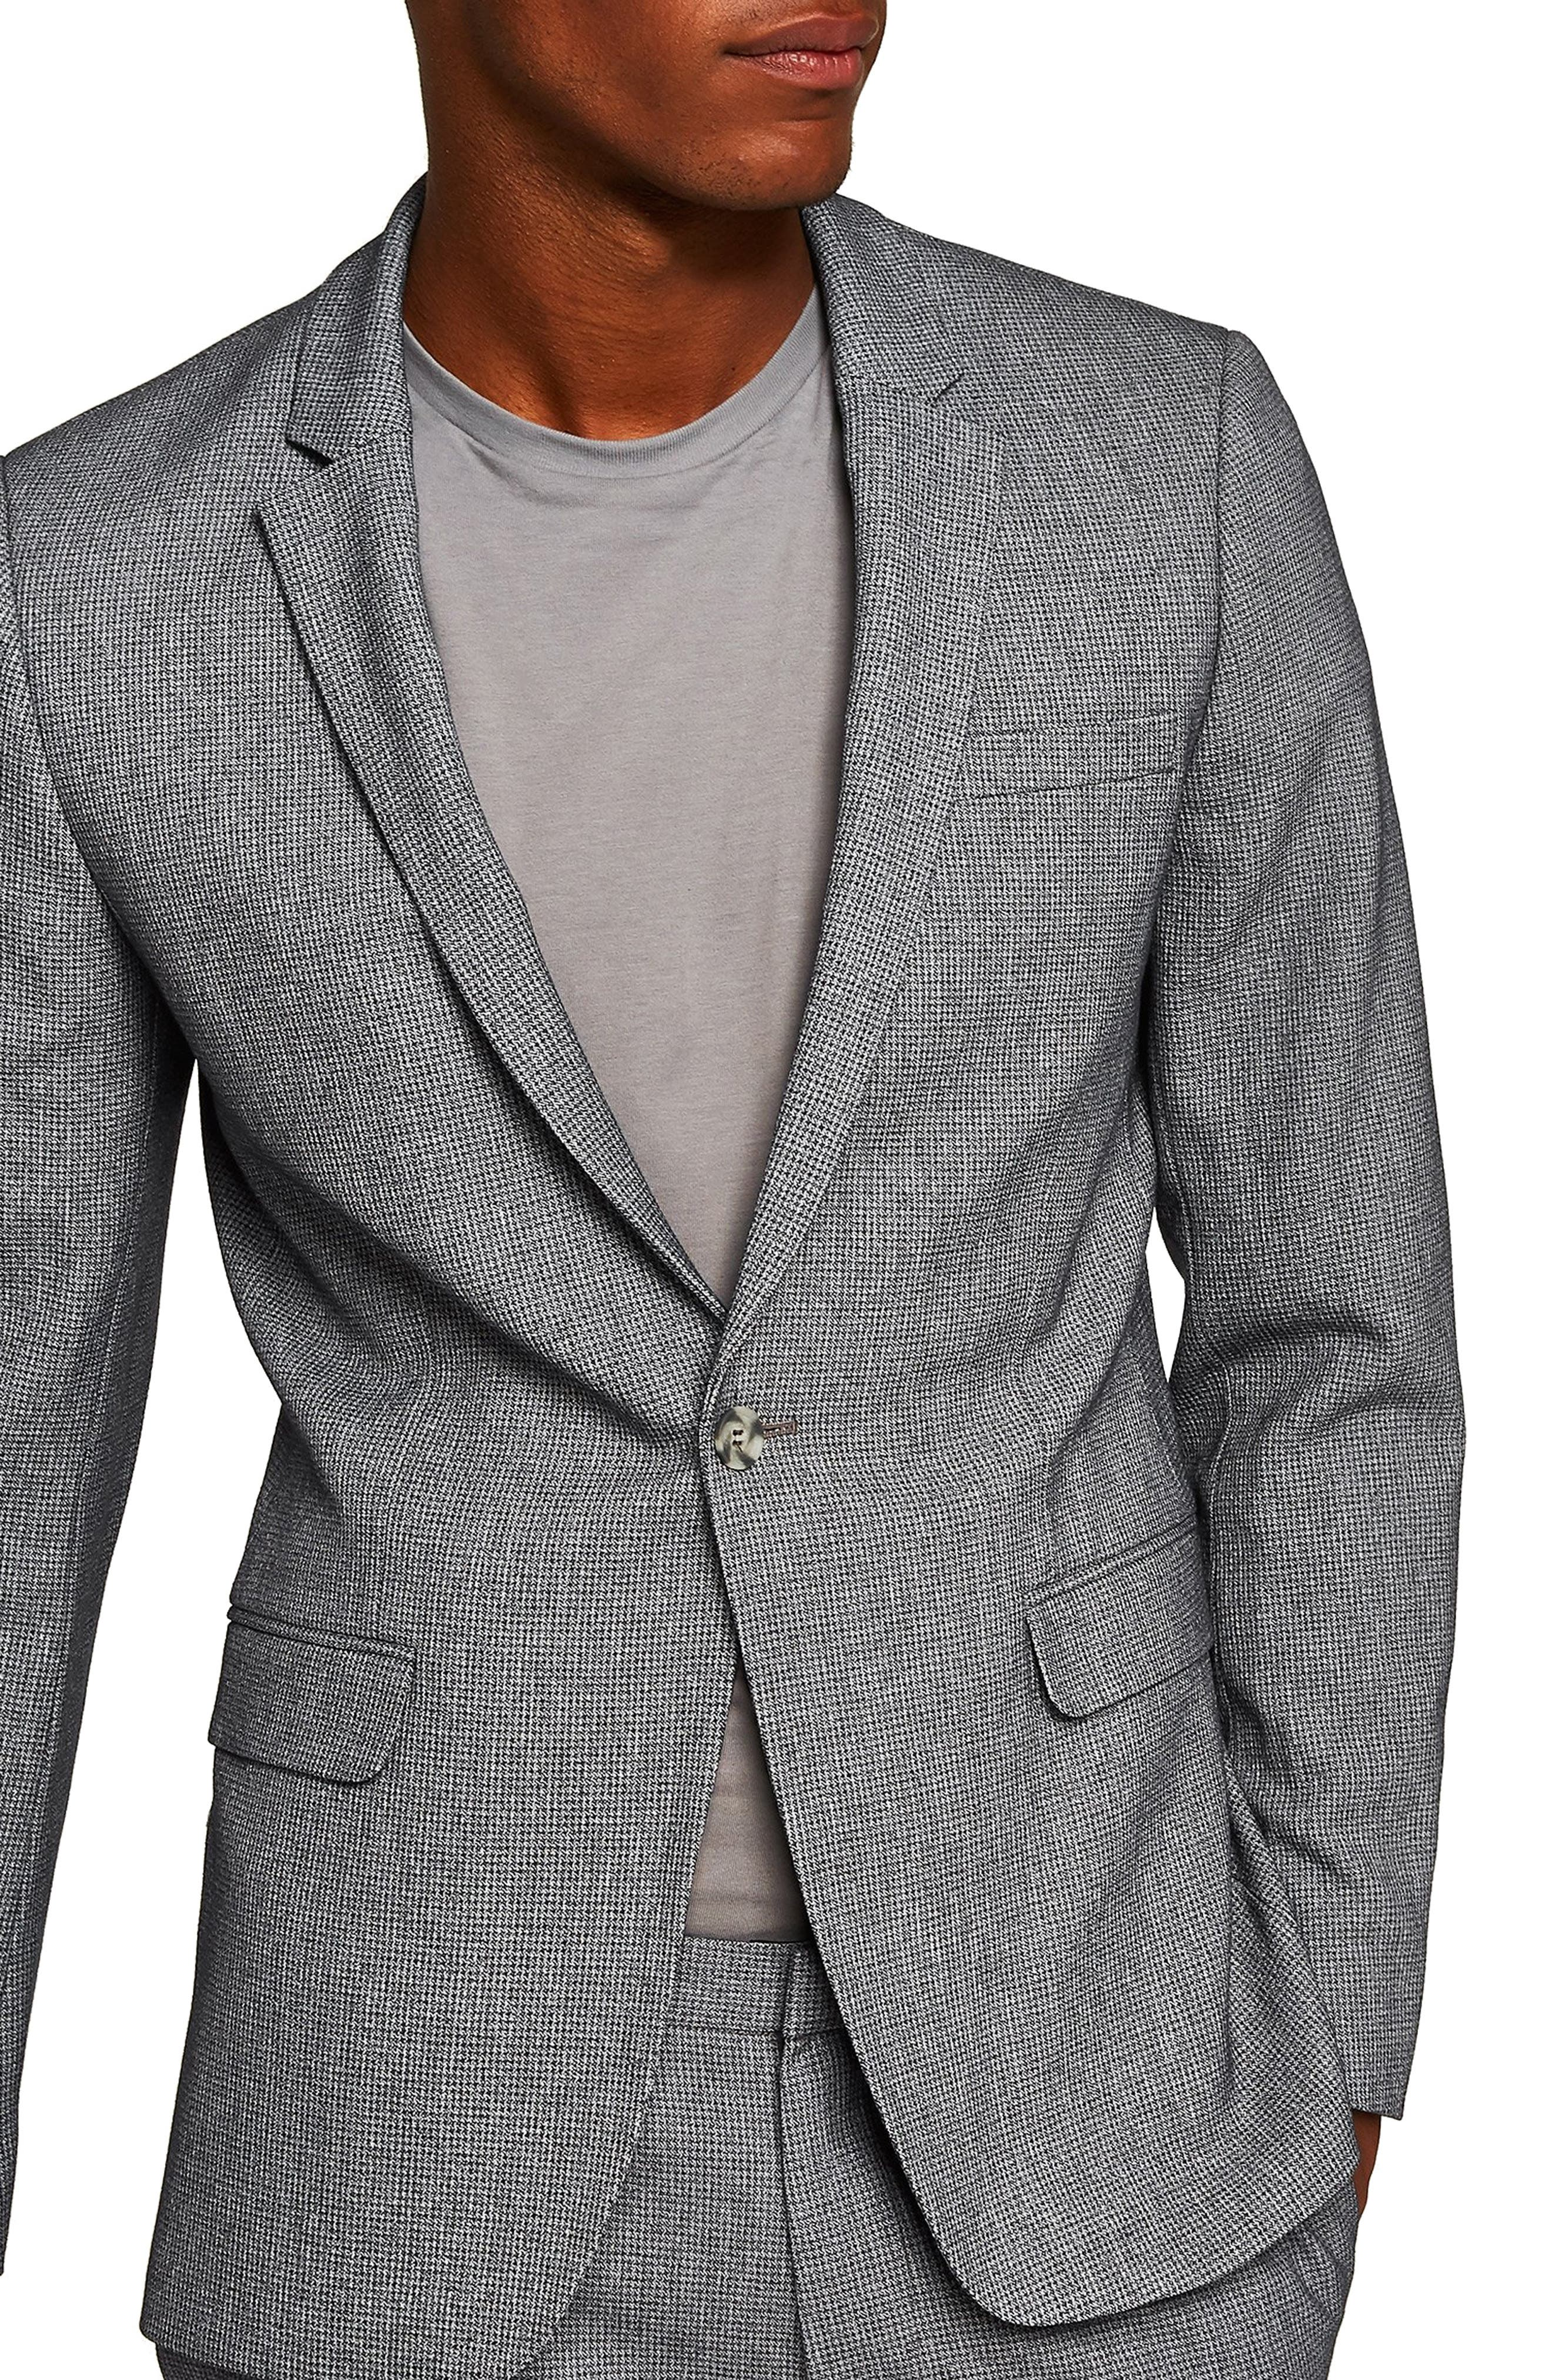 Ultra Skinny Fit Houndstooth Suit Jacket,                         Main,                         color, GREY